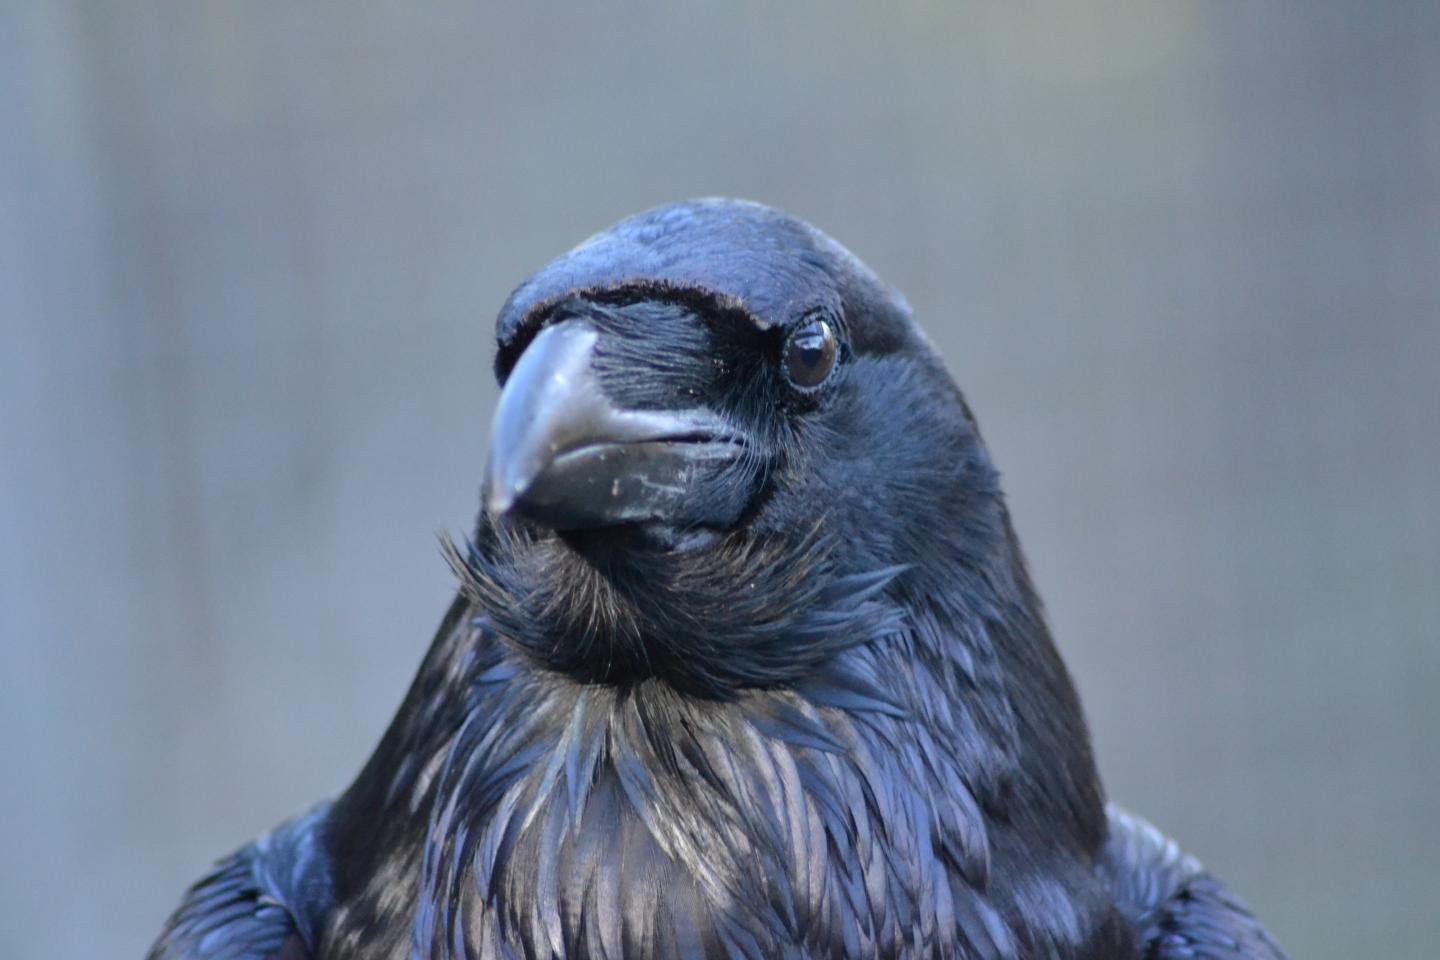 The study claims ravens can connect the acoustic information with their own experience mentally. Credit: Jana Müller, Universität Wien